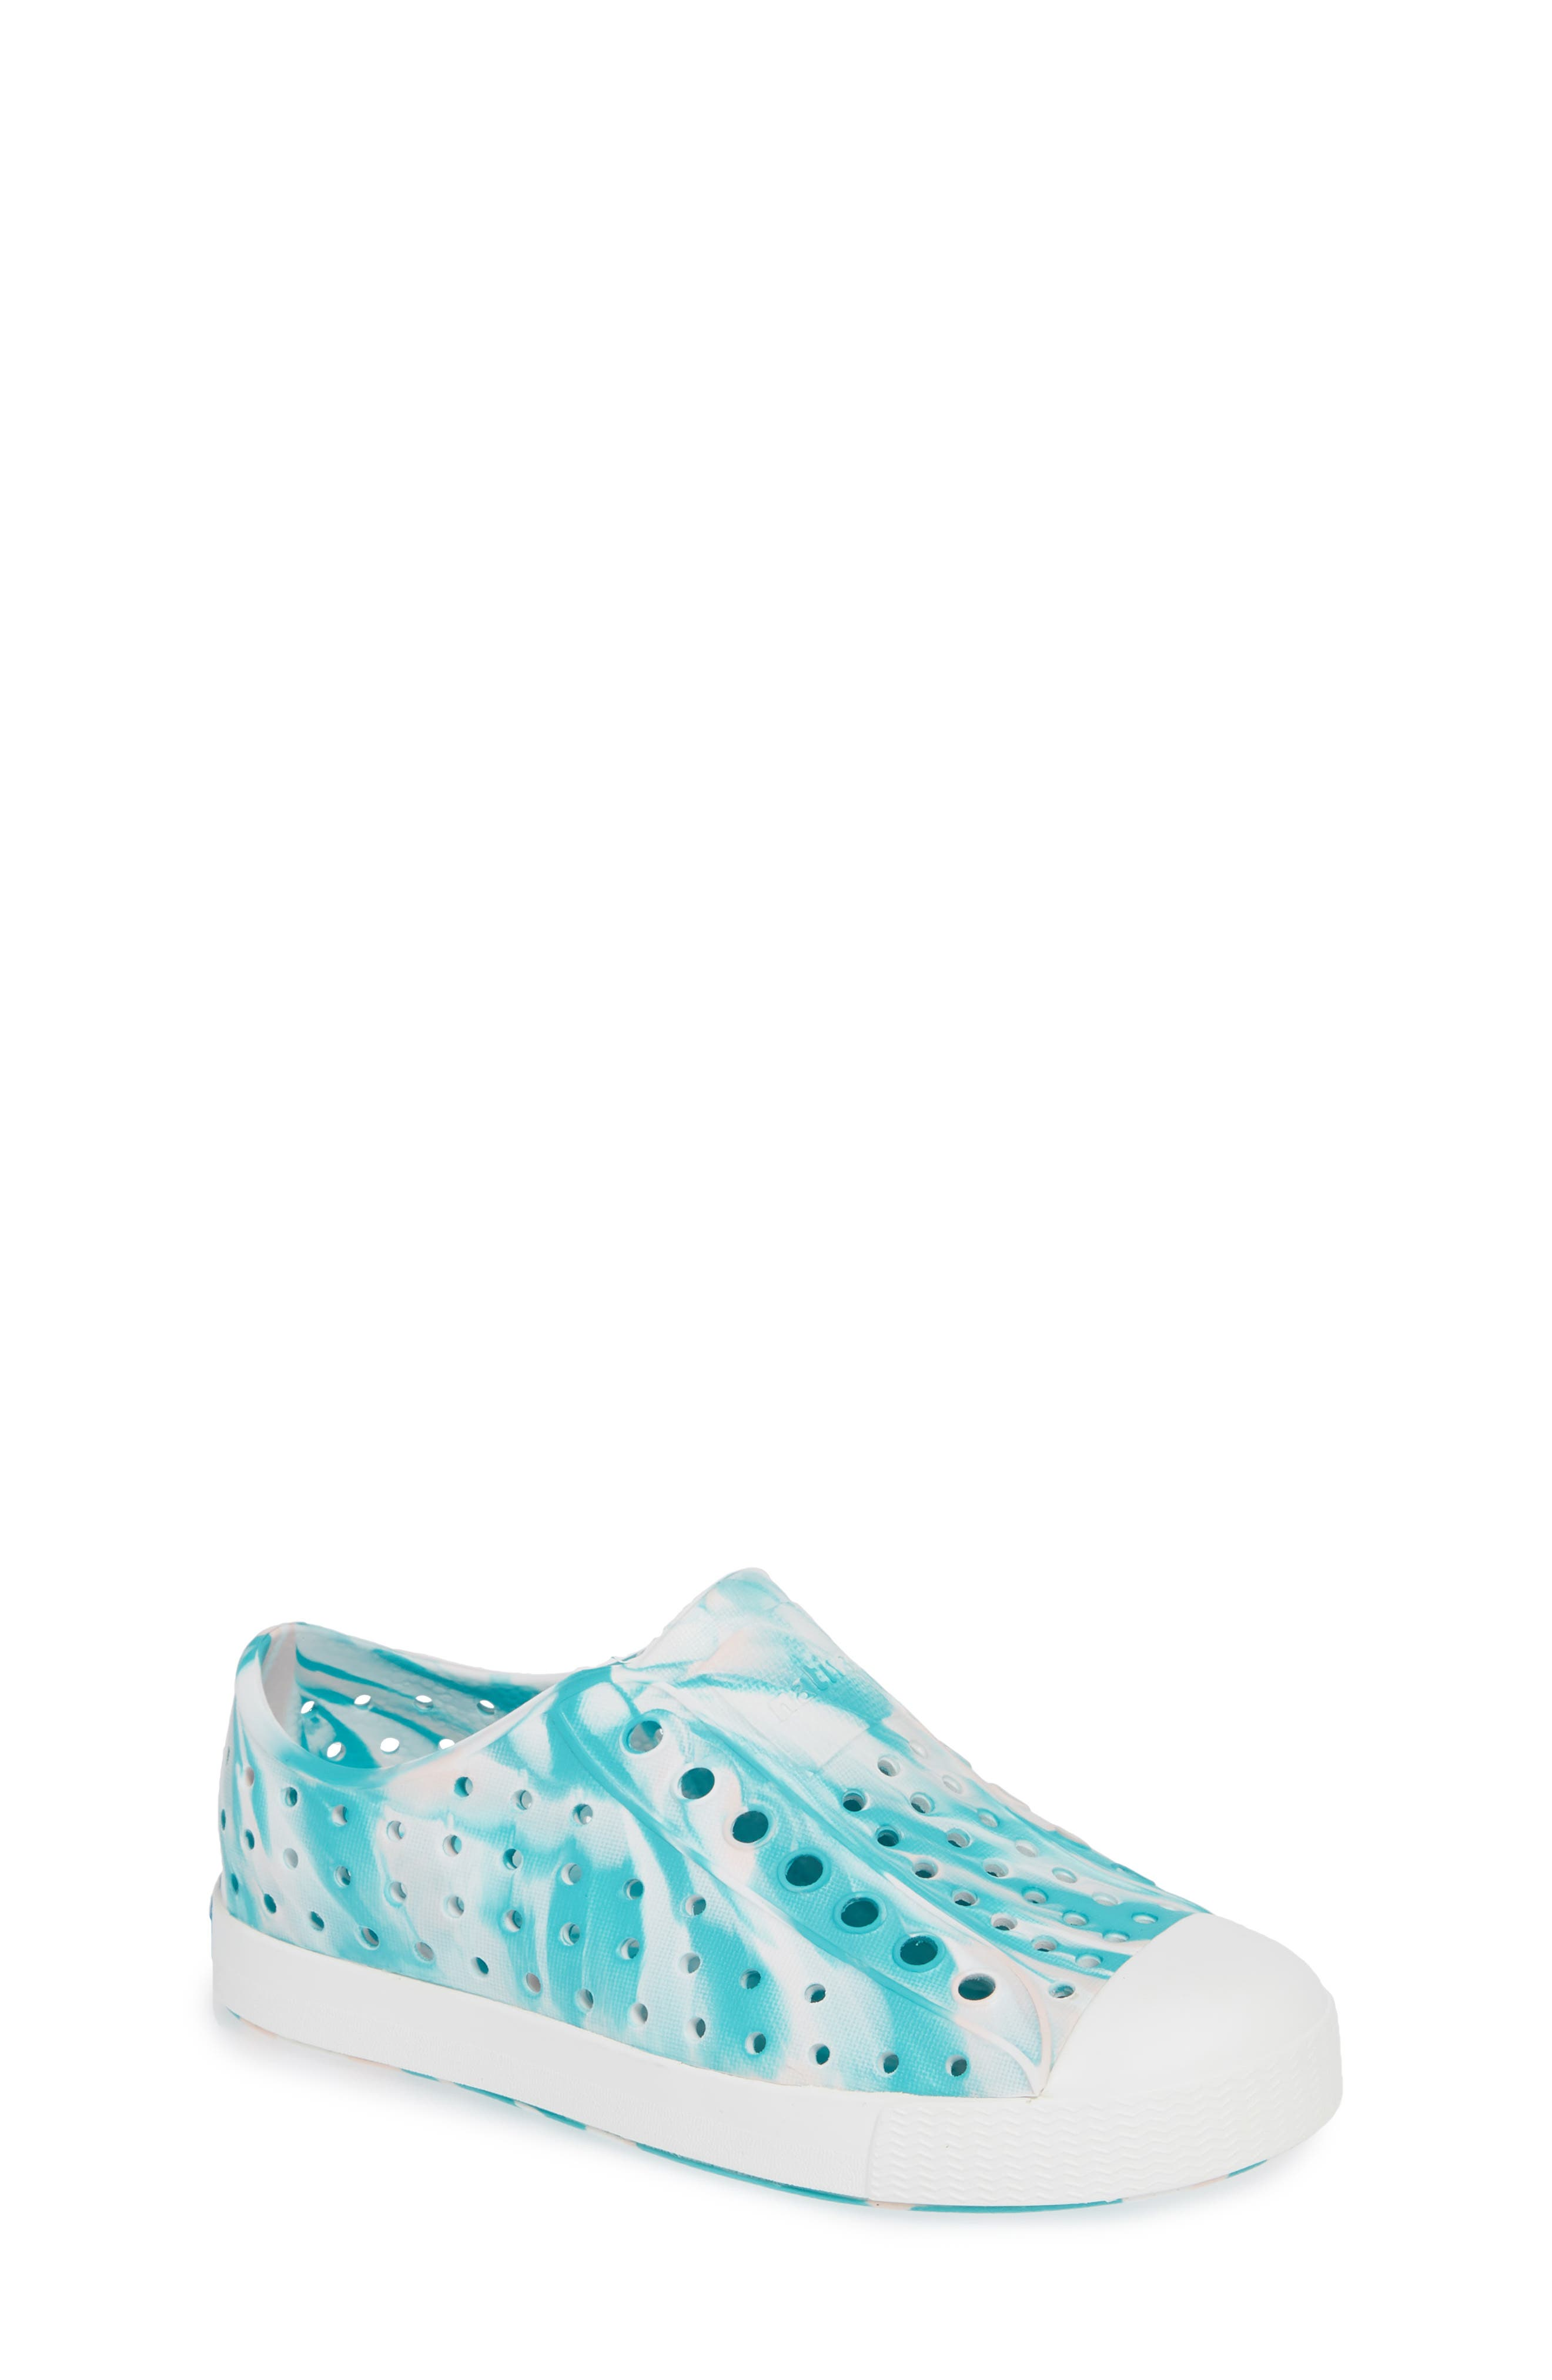 Jefferson - Marbled Perforated Slip-On,                             Main thumbnail 1, color,                             GLASS GREEN/ WHITE MARBLED